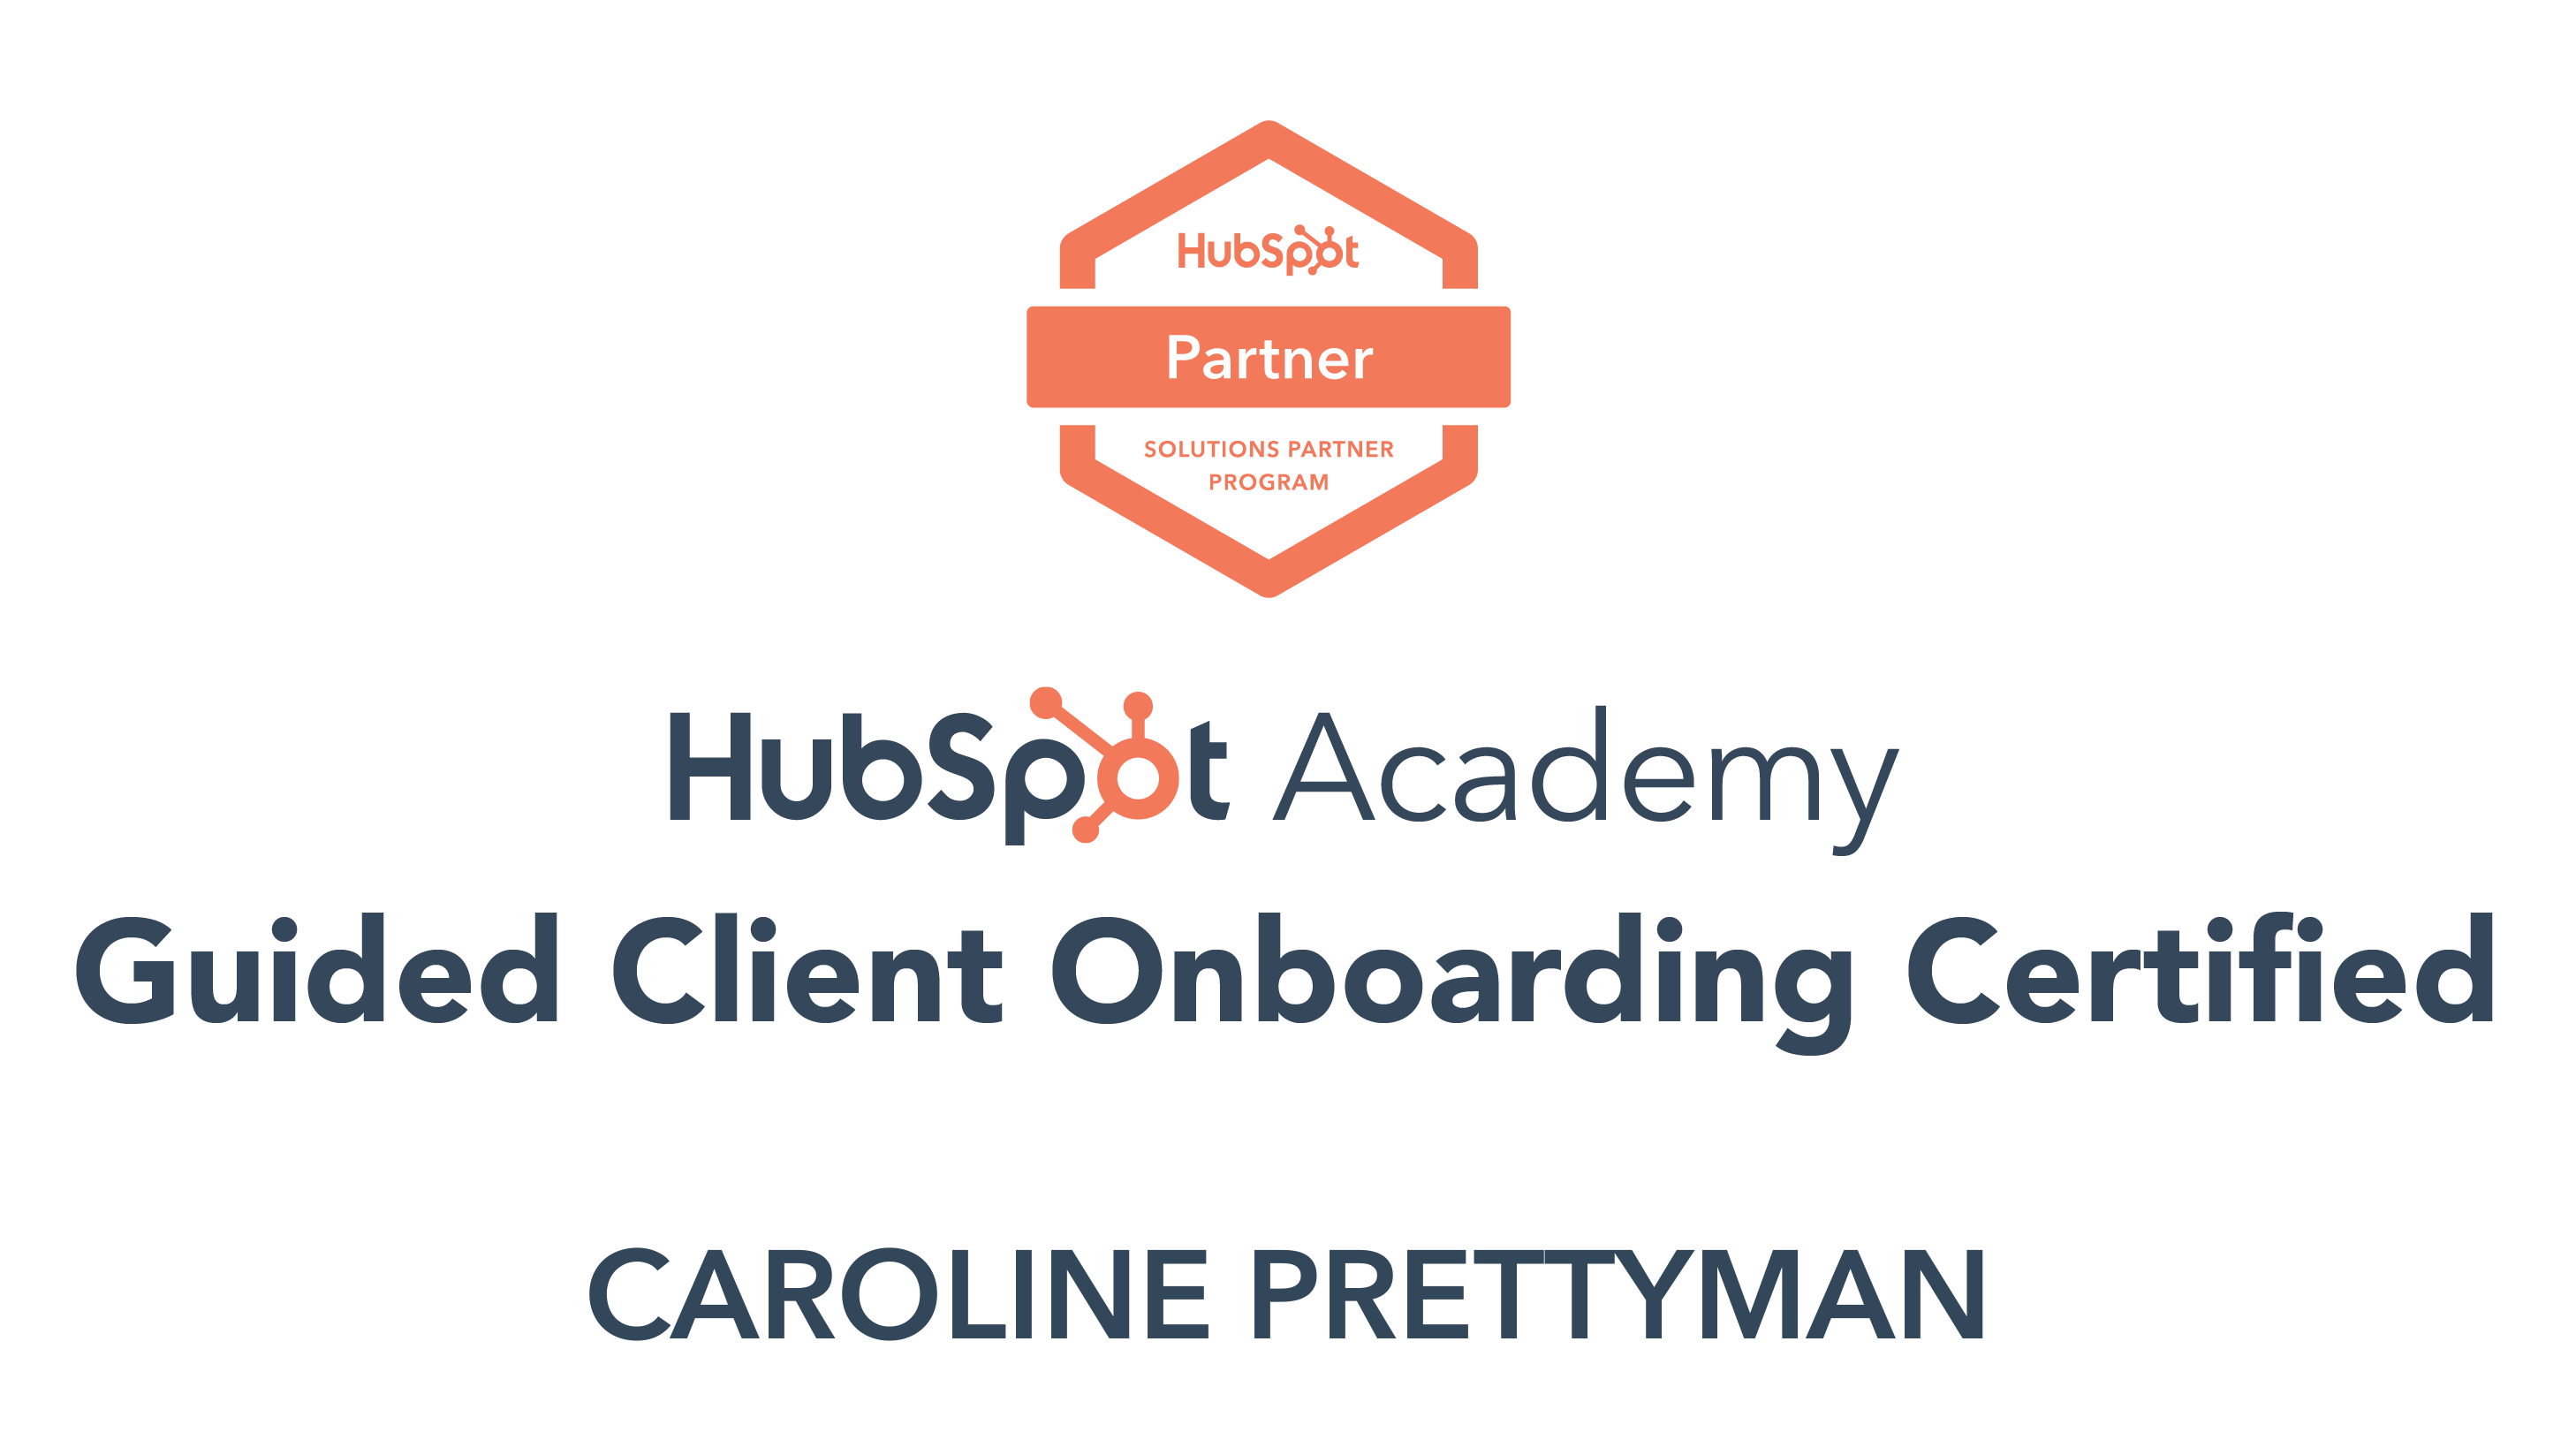 HubSpot Academy, Guided Client Onboarding Certified